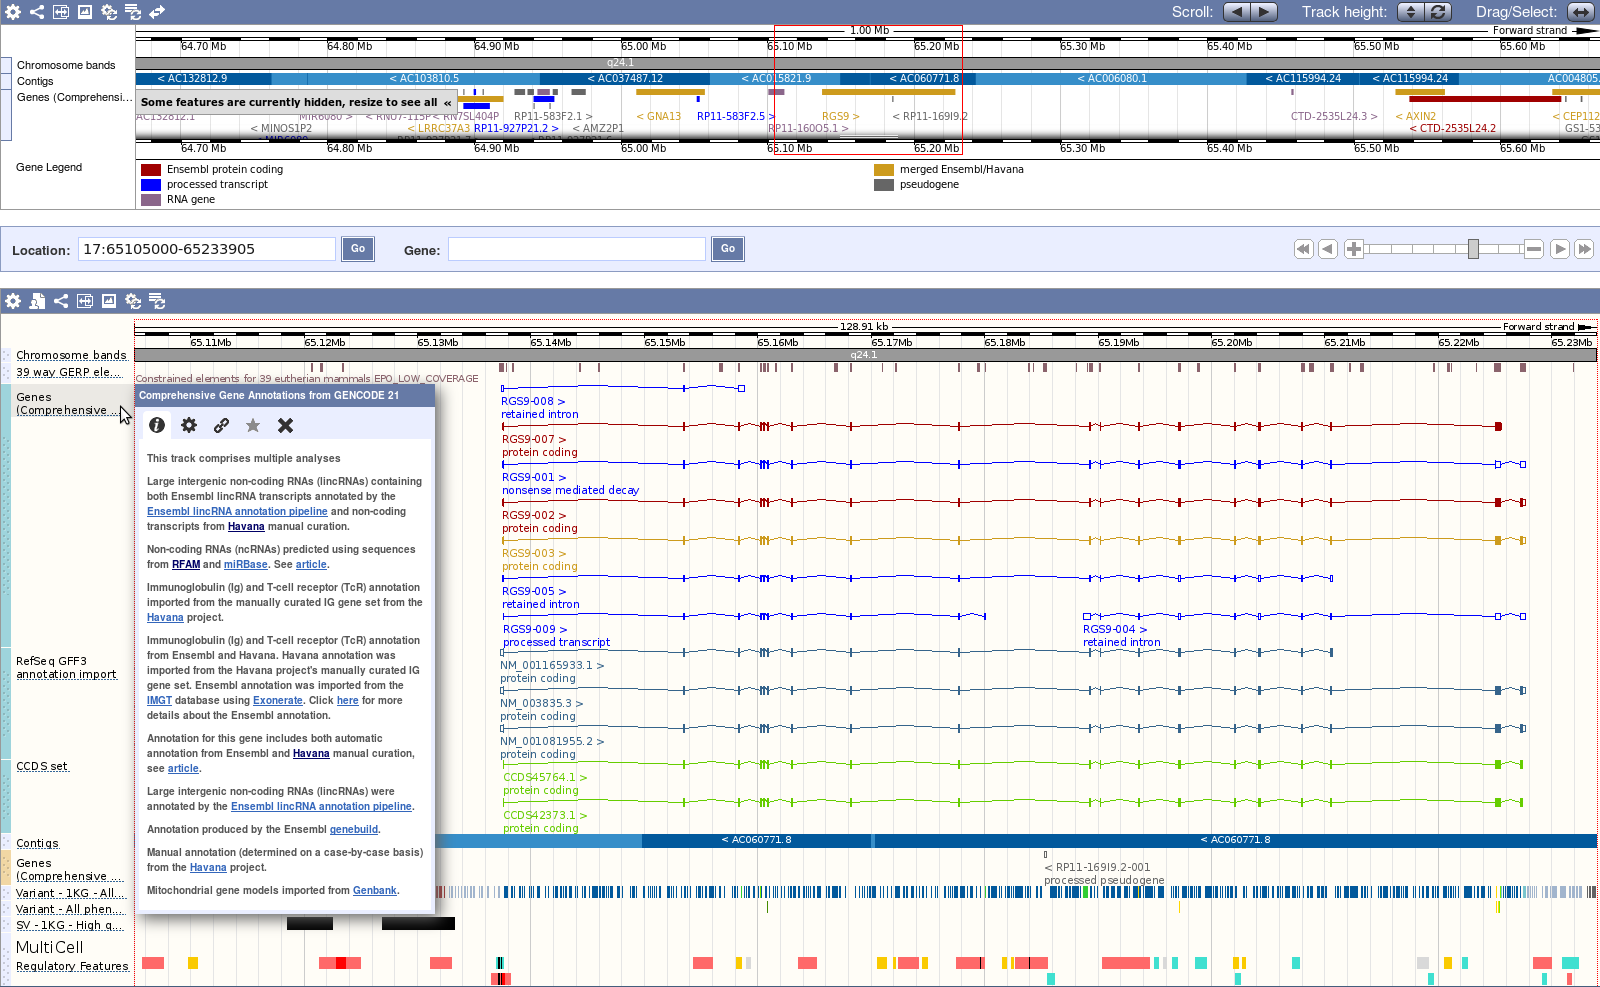 Screenshot of Ensembl browser showing GENCODE annotation